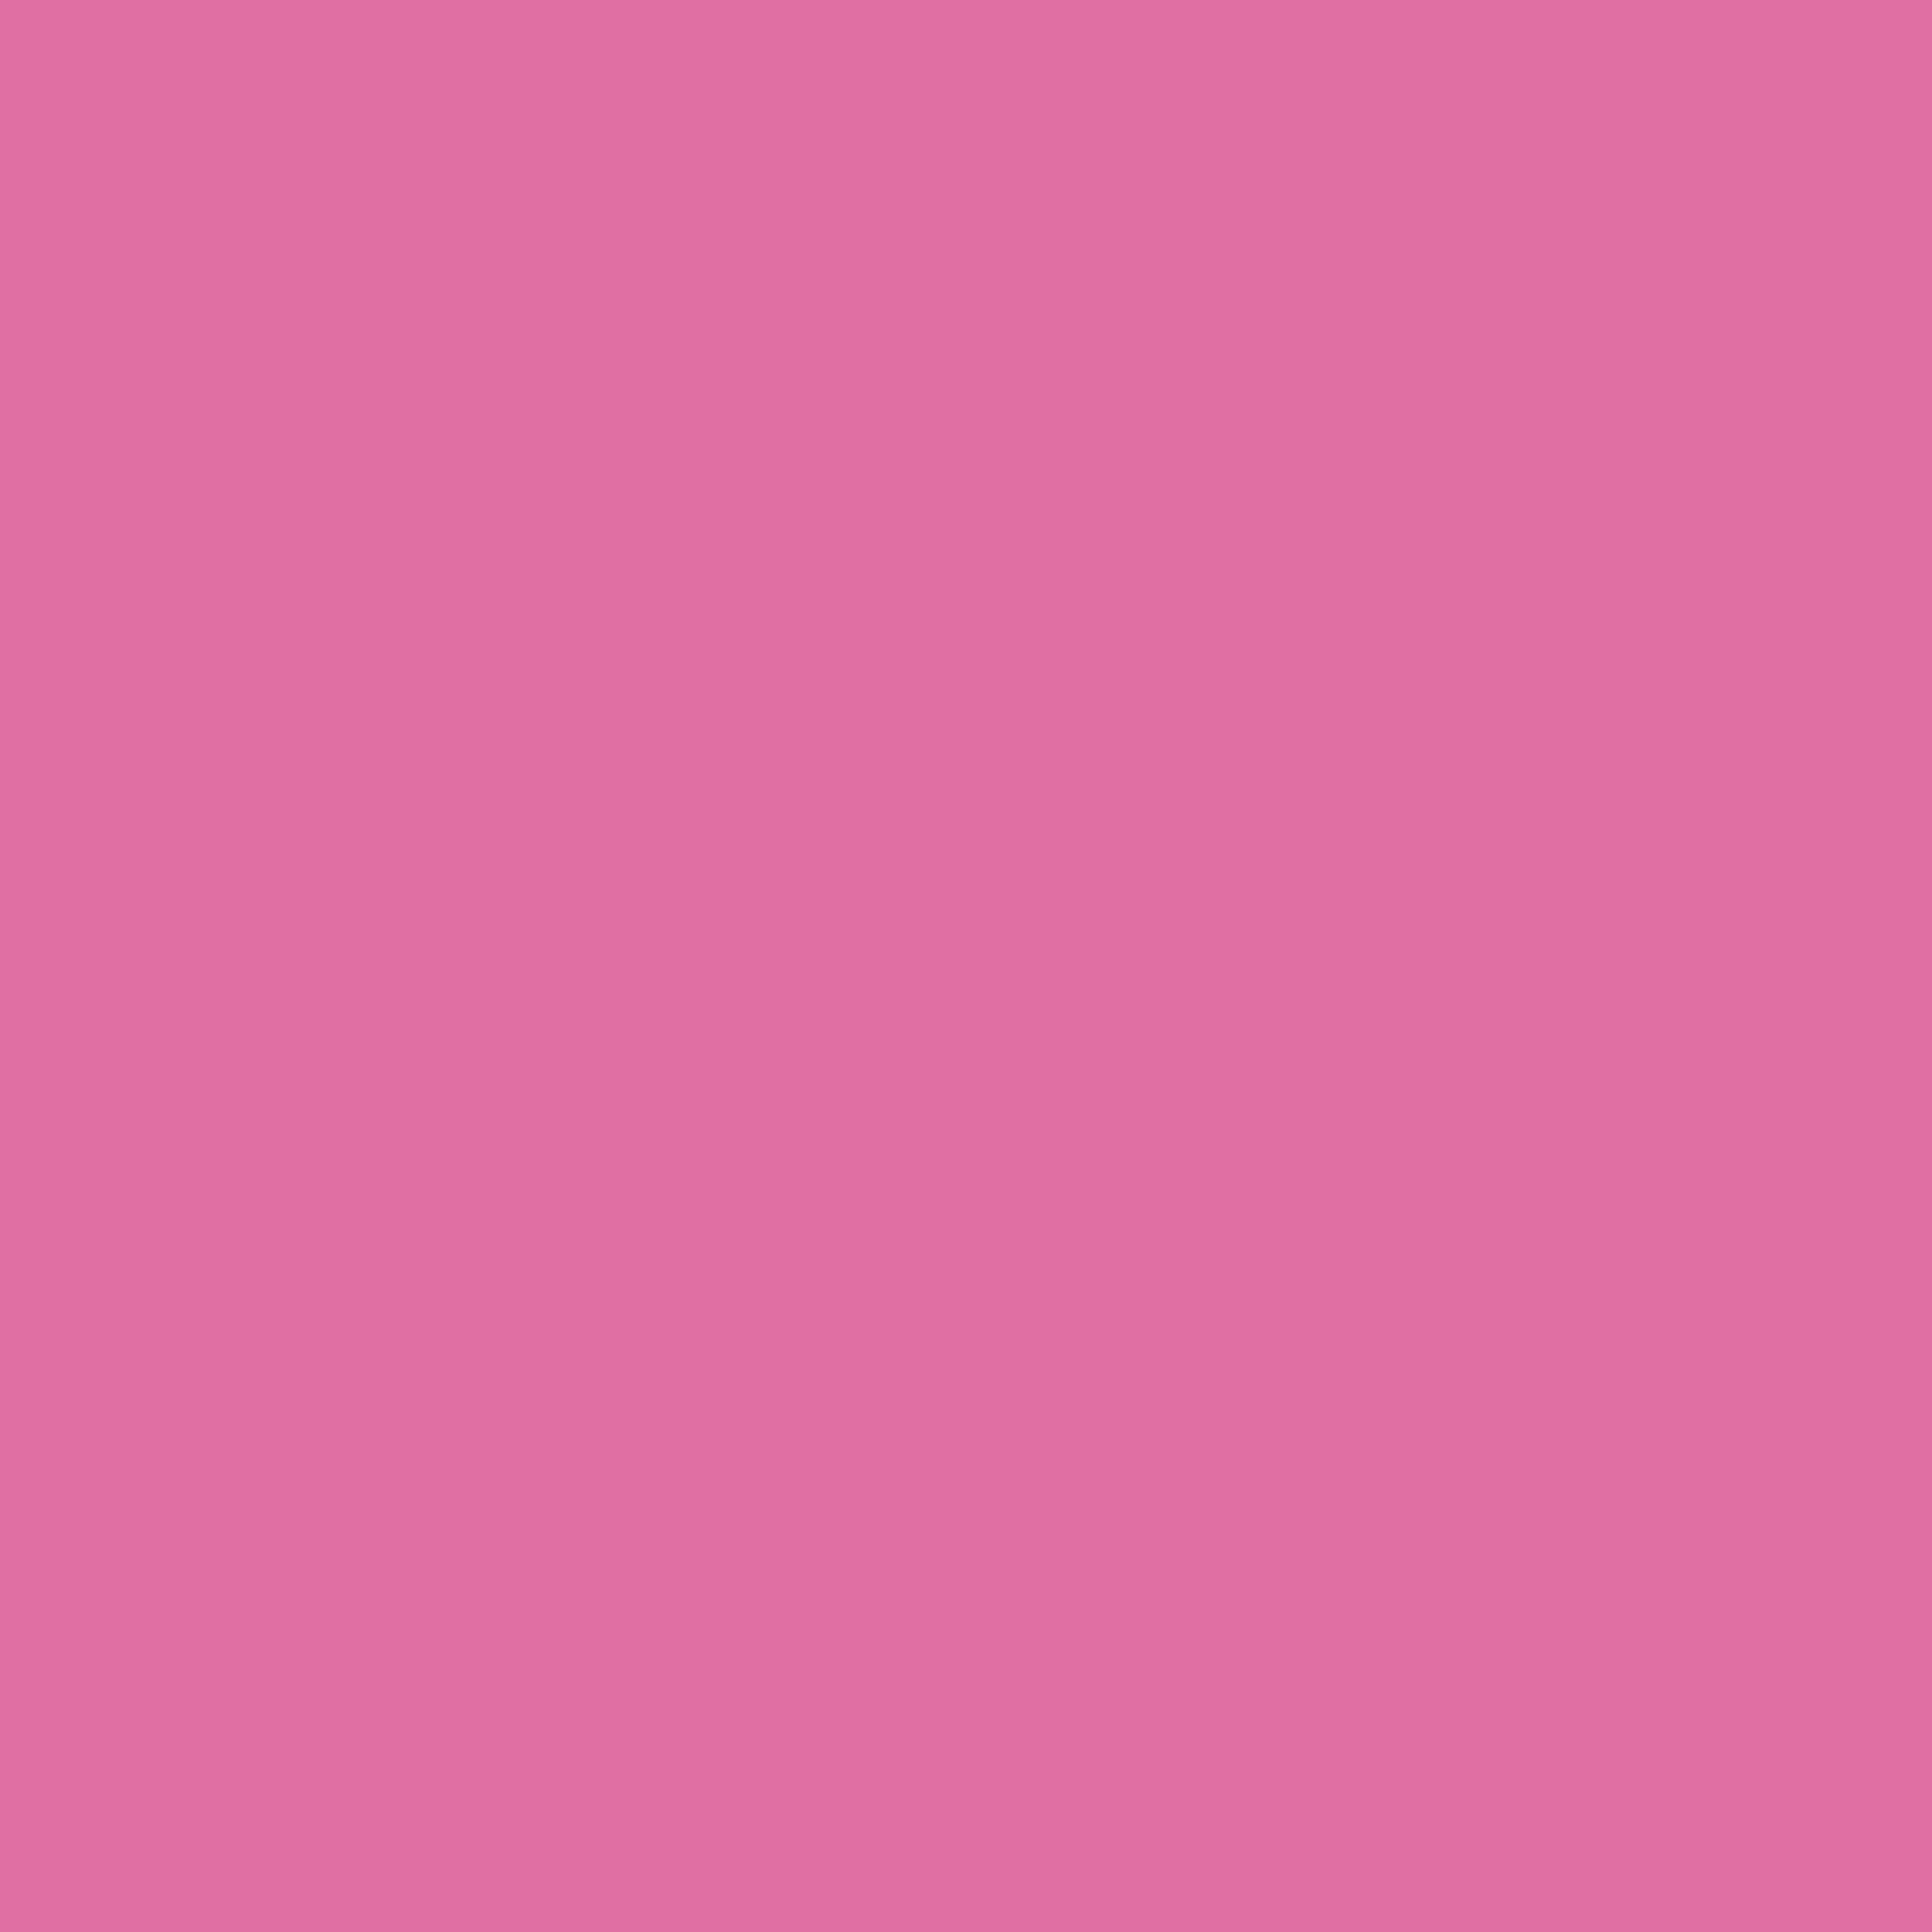 3600x3600 China Pink Solid Color Background